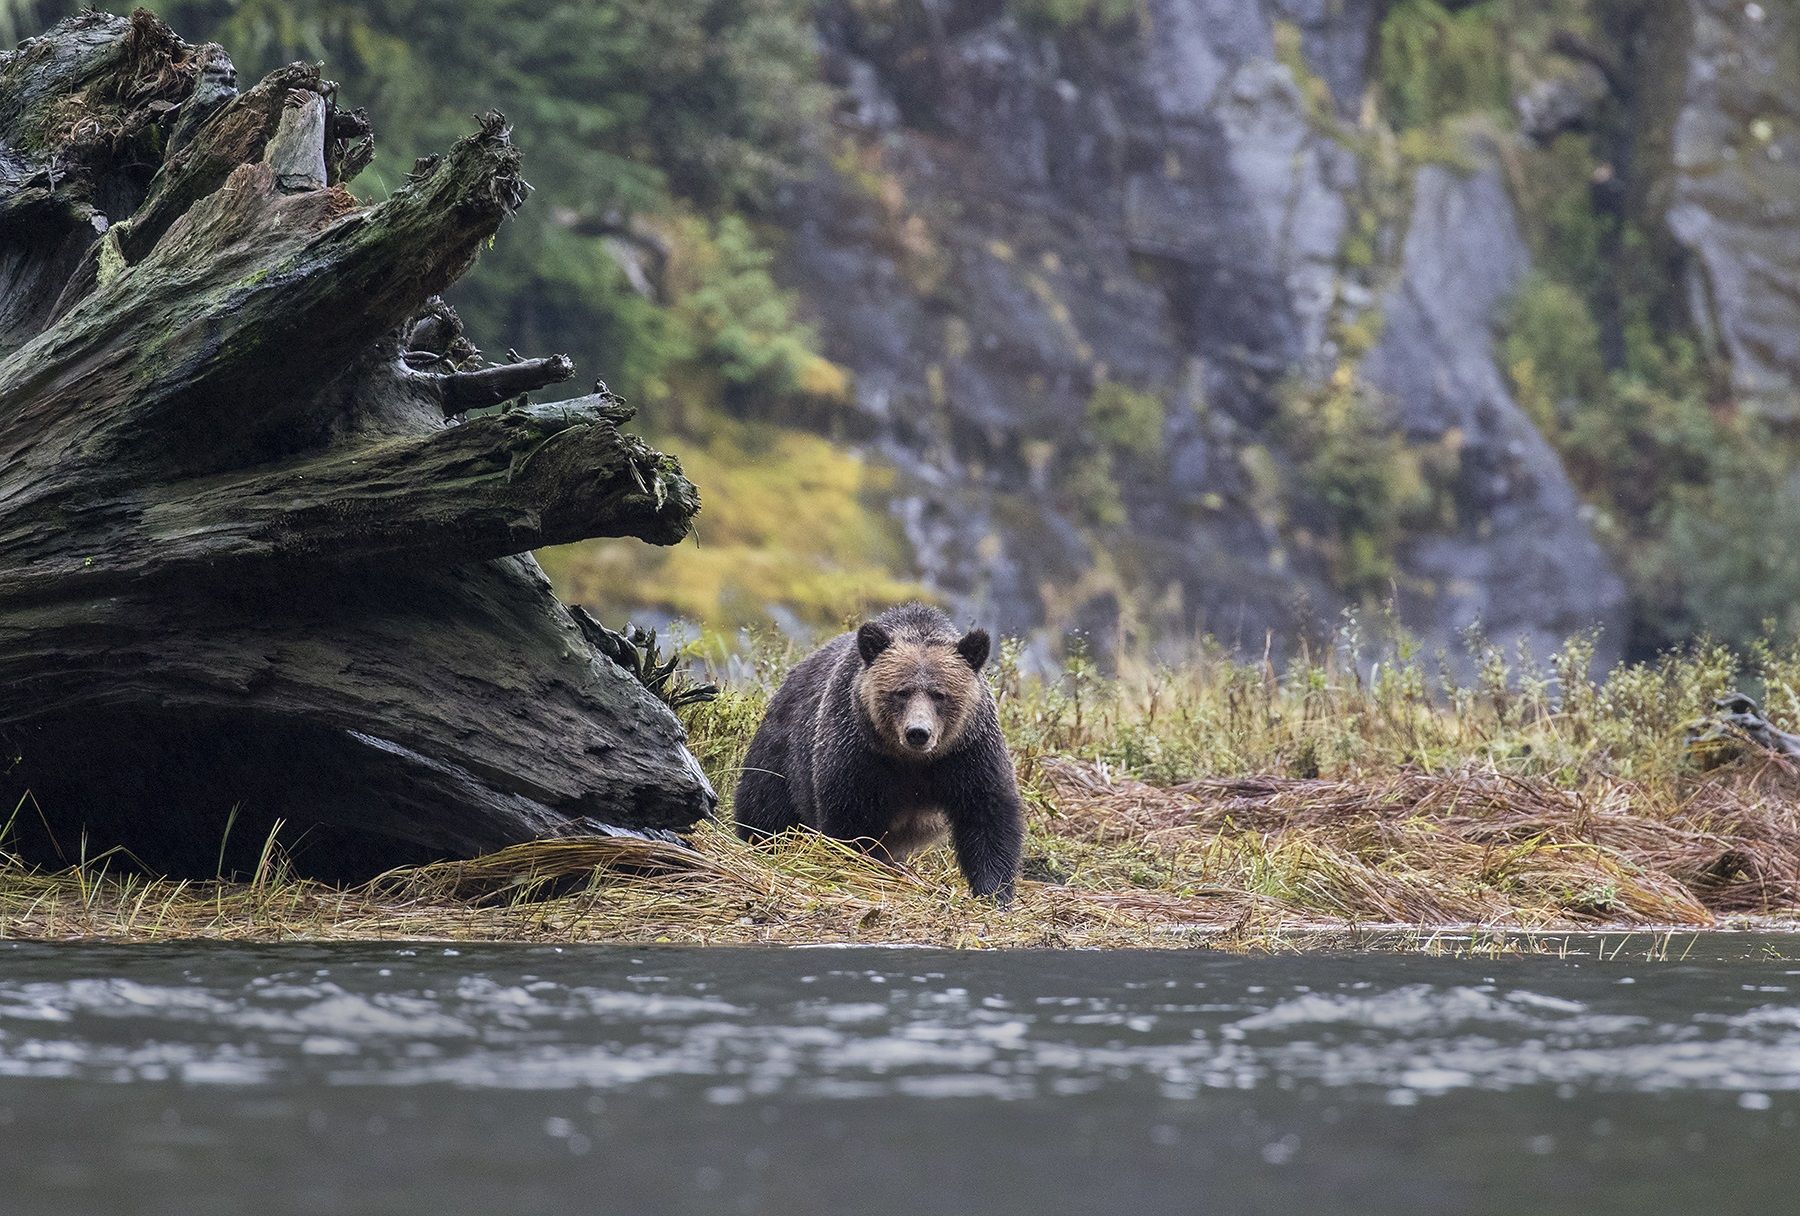 DAVID HEMMINGS GREAT BEAR RAINFOREST Sai